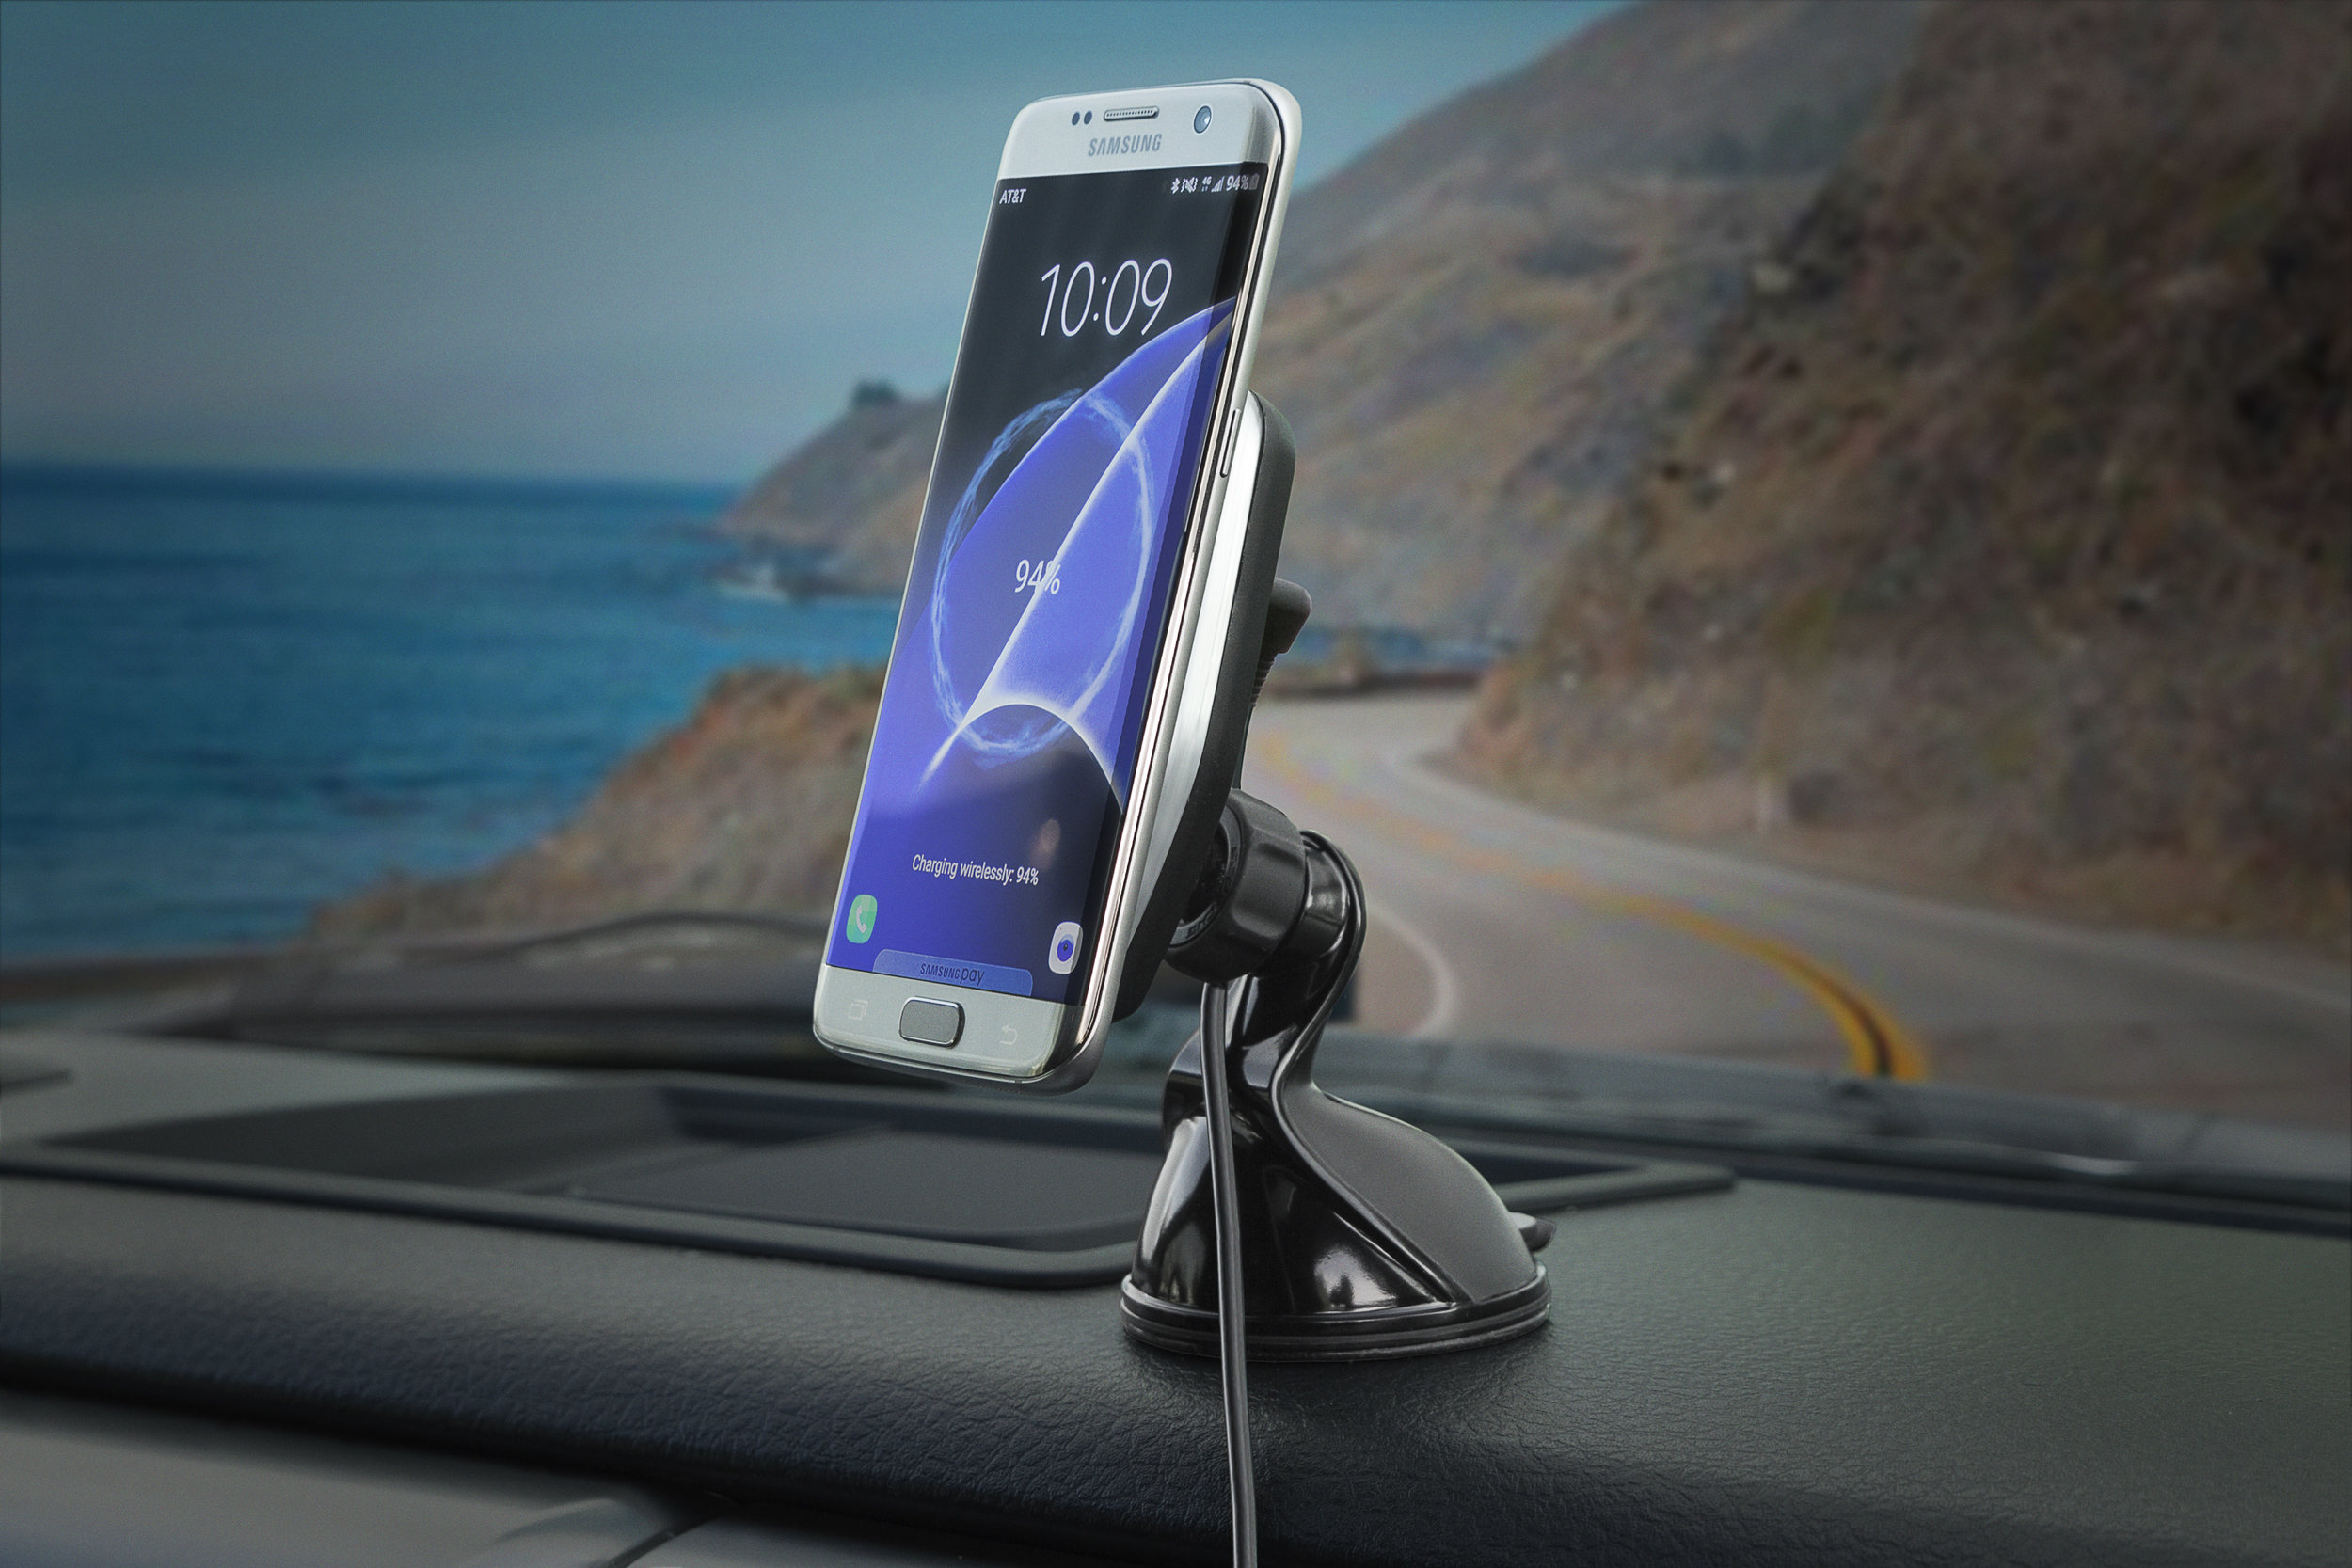 MagicMount CHARGE (MPQWD) for vehicles, unfortunately shown with a Samsung phone